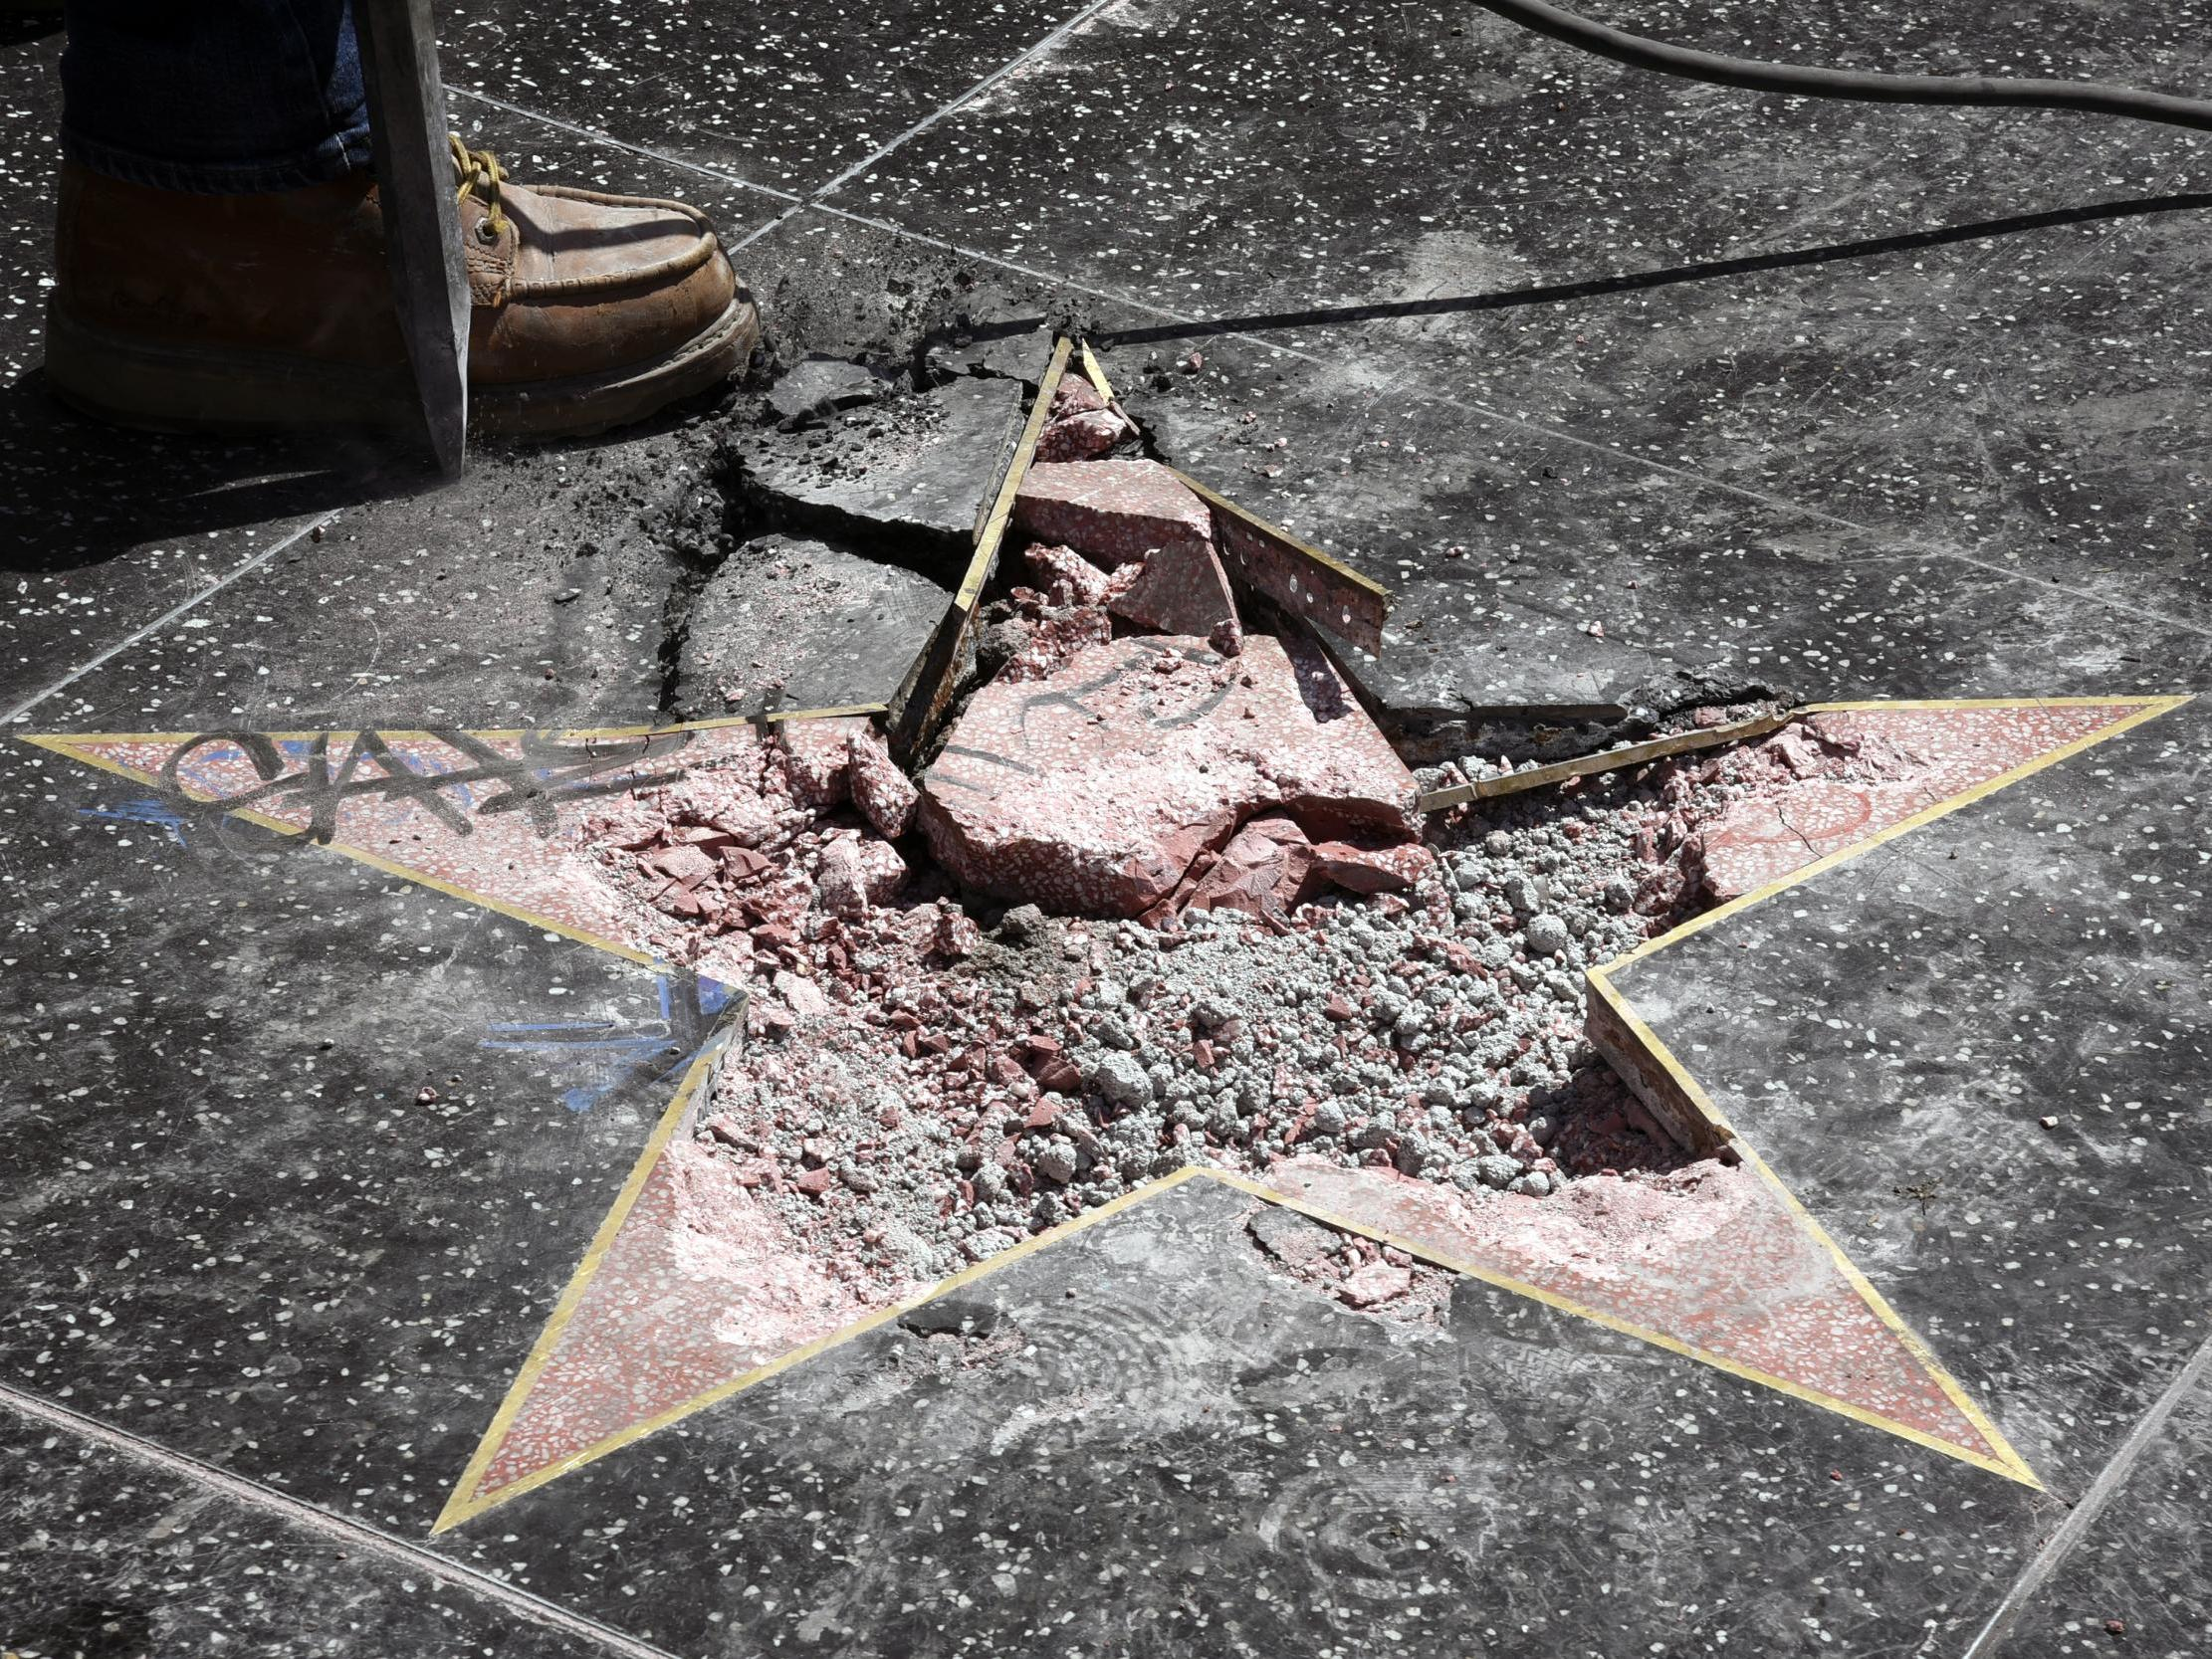 Trump's star on the Walk of Fame to be permanently removed after